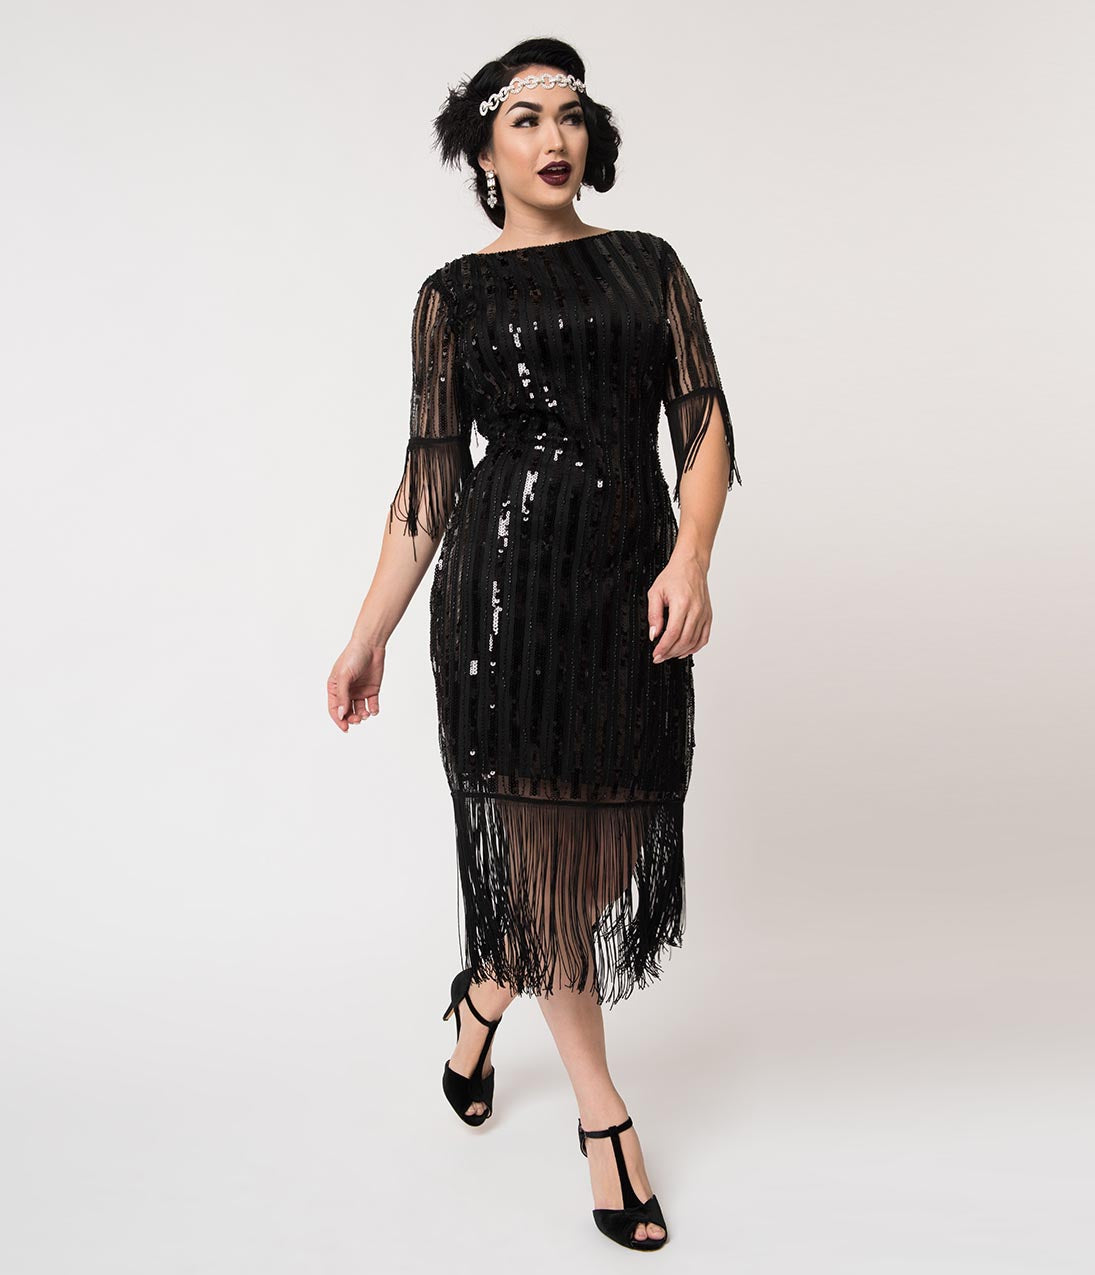 Flapper Costume: How to Dress Like a 20s Flapper Girl Unique Vintage Black Sequin Fringe Sleeve Marcy Flapper Dress $98.00 AT vintagedancer.com